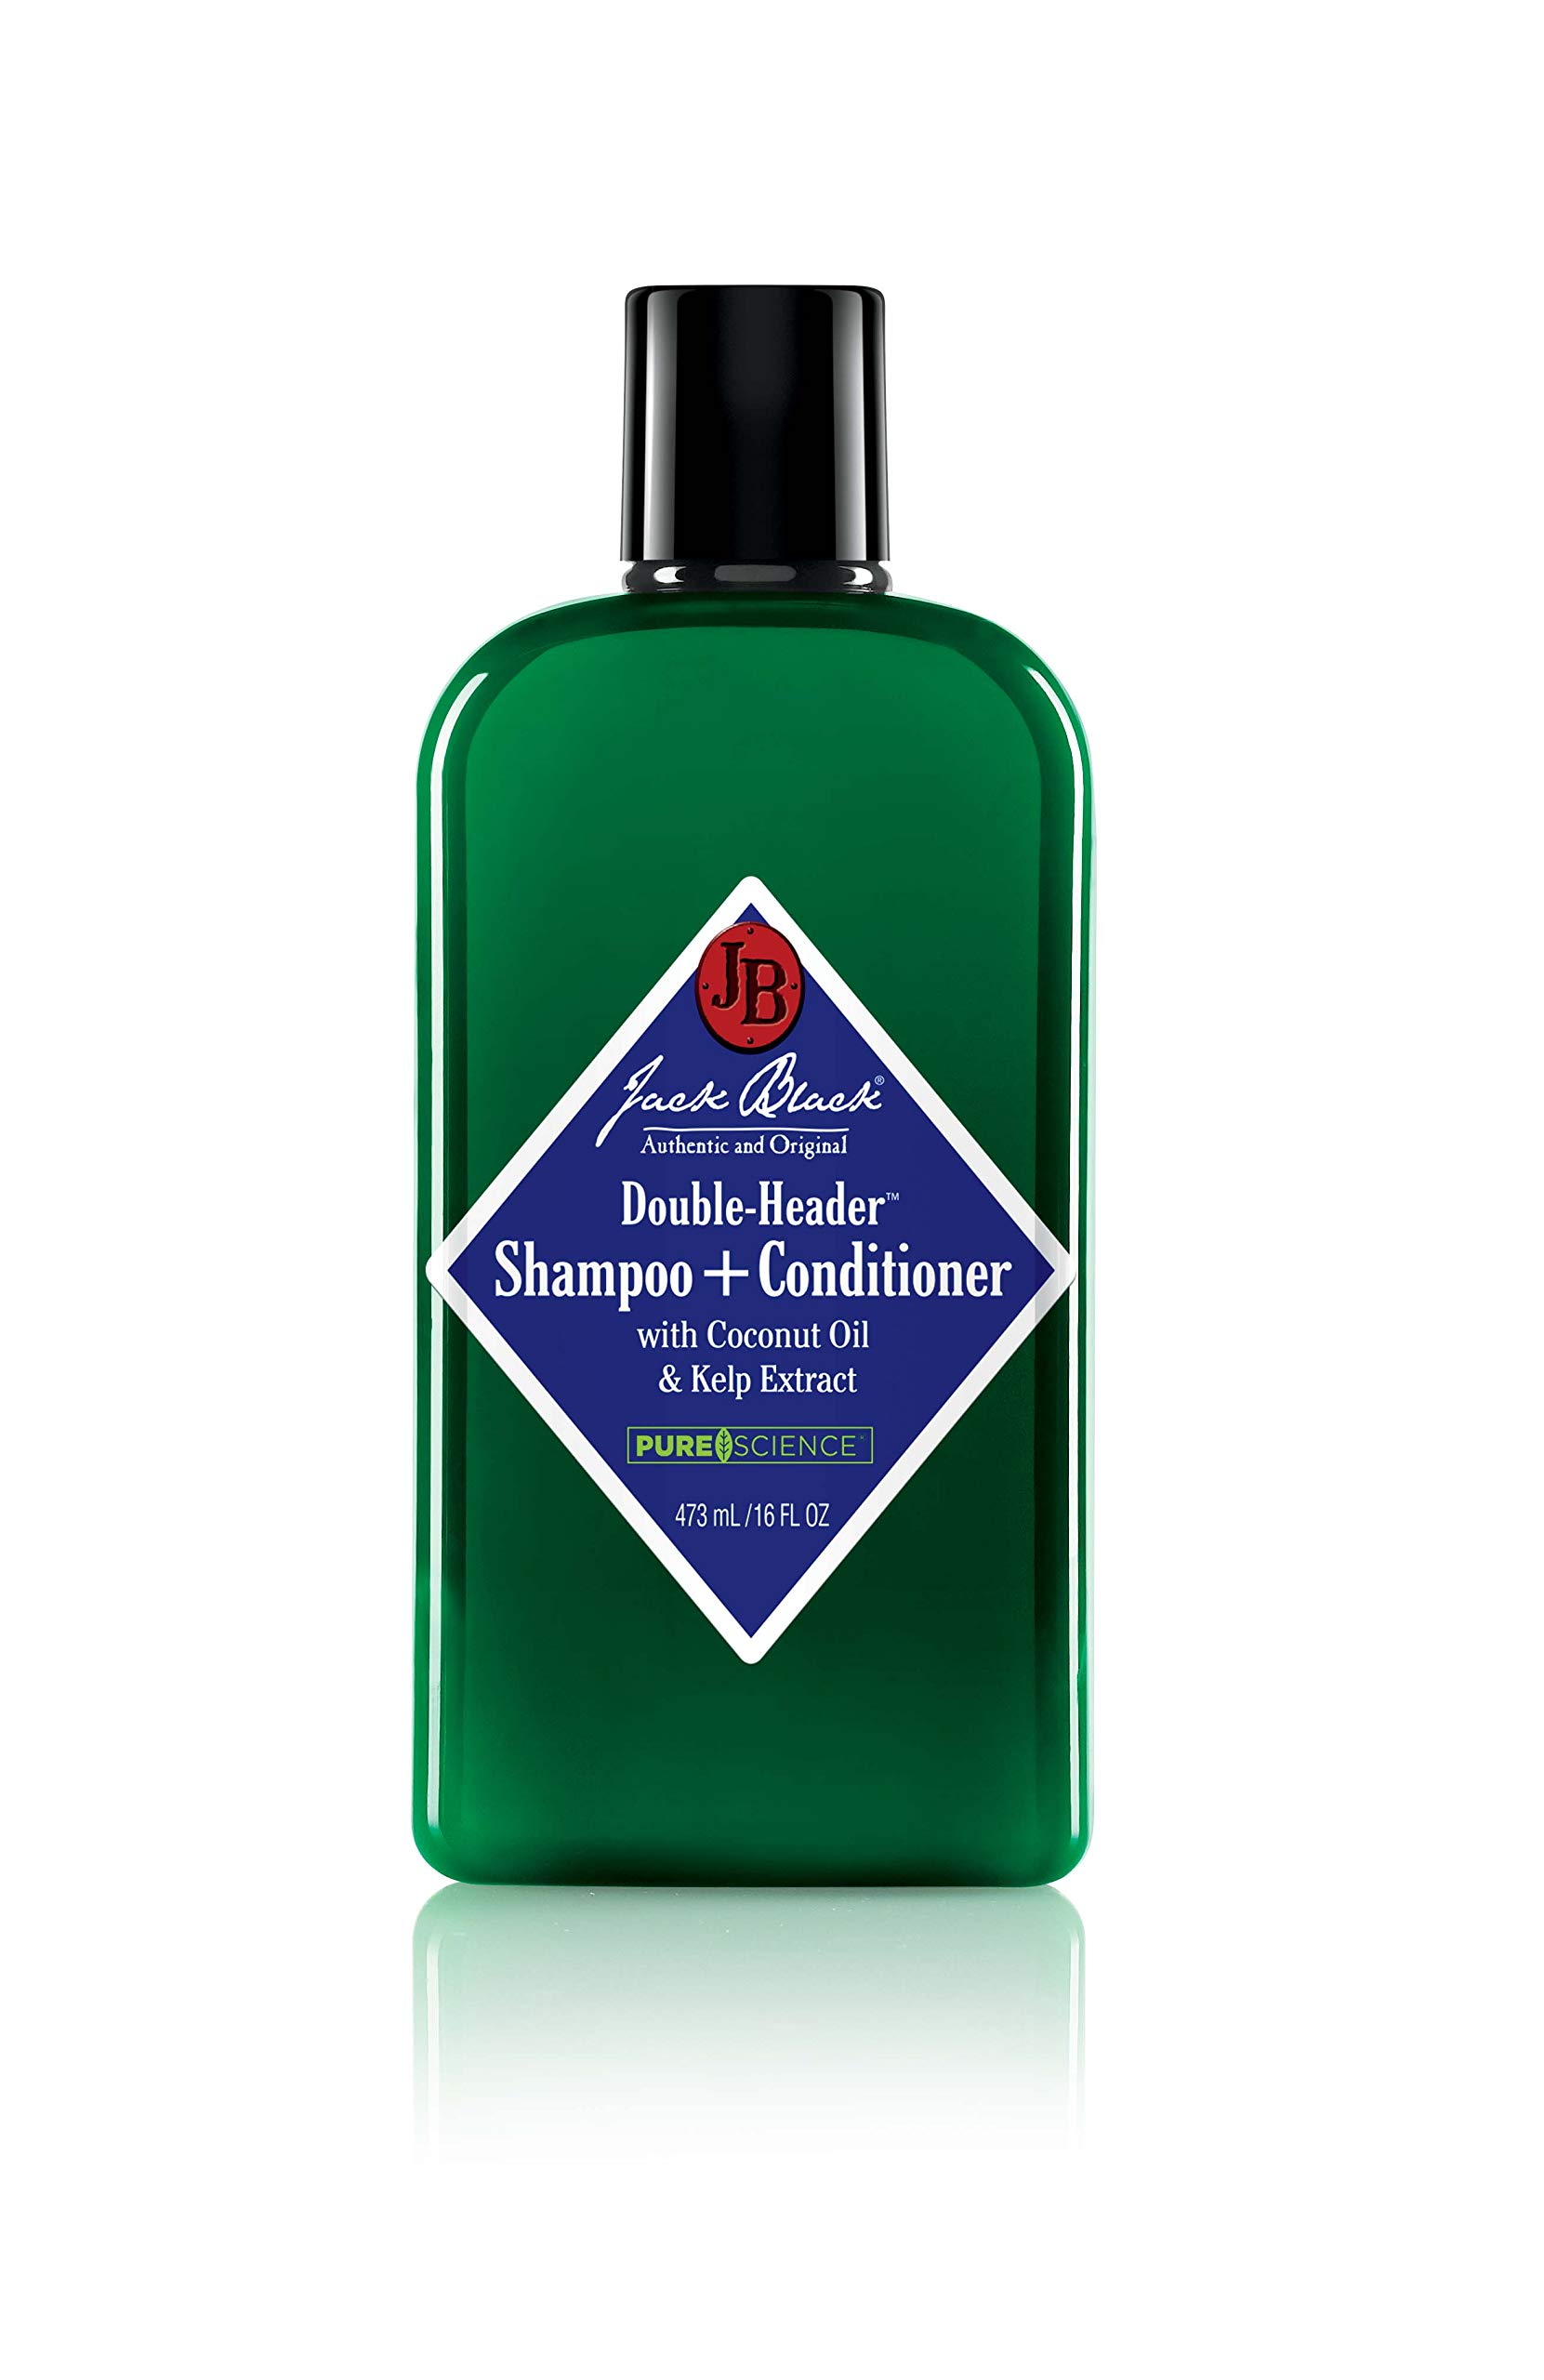 Jack Black - Double-Header Shampoo + Conditioner - PureScience Formula, Coconut Oil and Kelp Extract, Sulfate-Free, Removes Oil and Product Buildup, Lightly Conditions and Soothes, 16 Oz